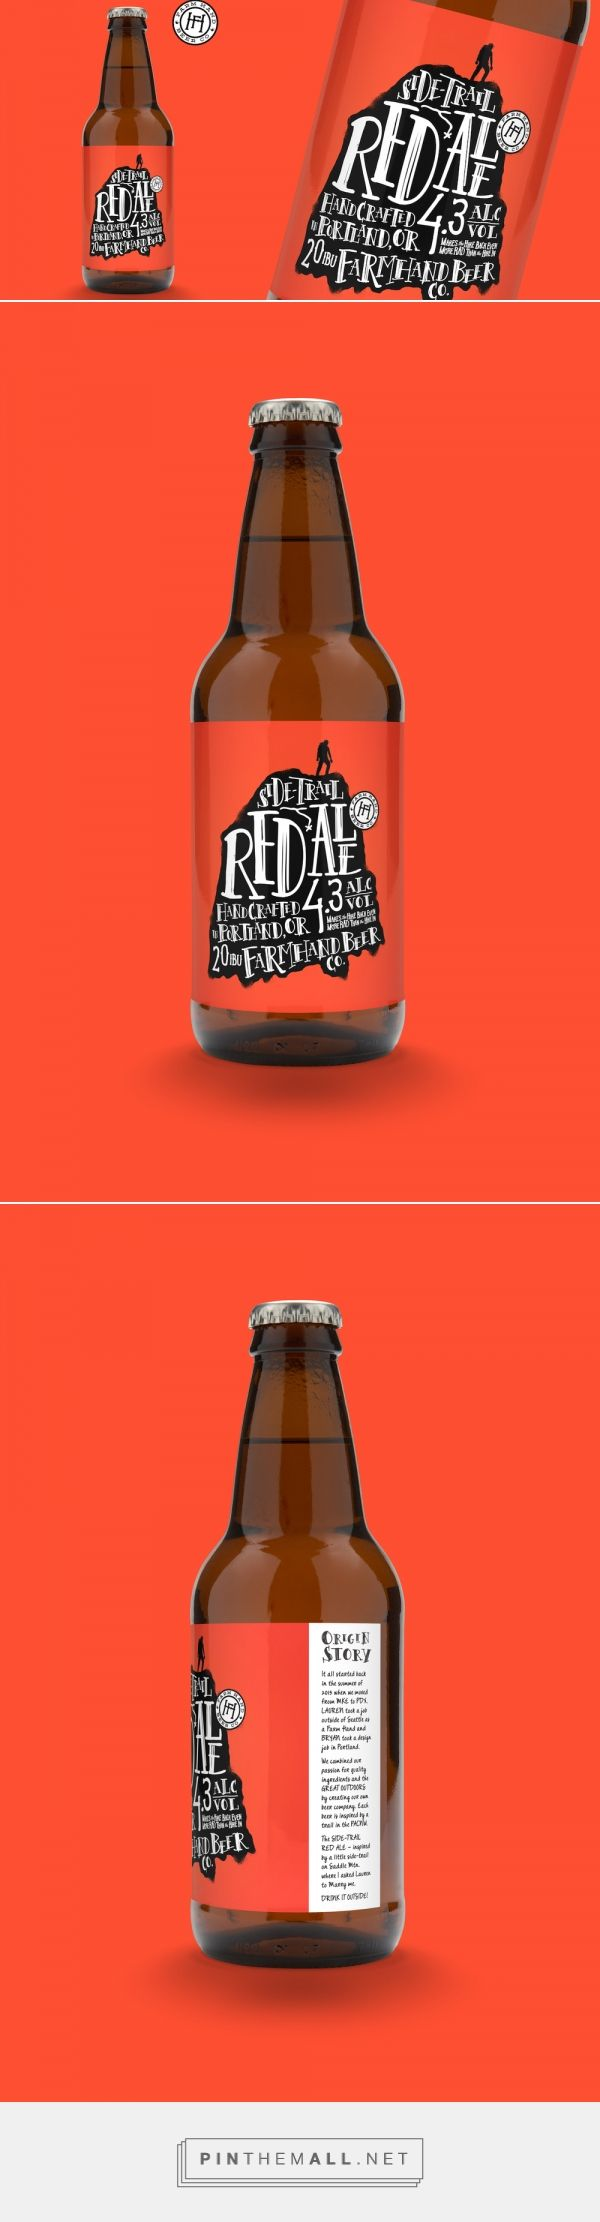 Farm Hand Beer Co. — Designed by Bryan Padovano